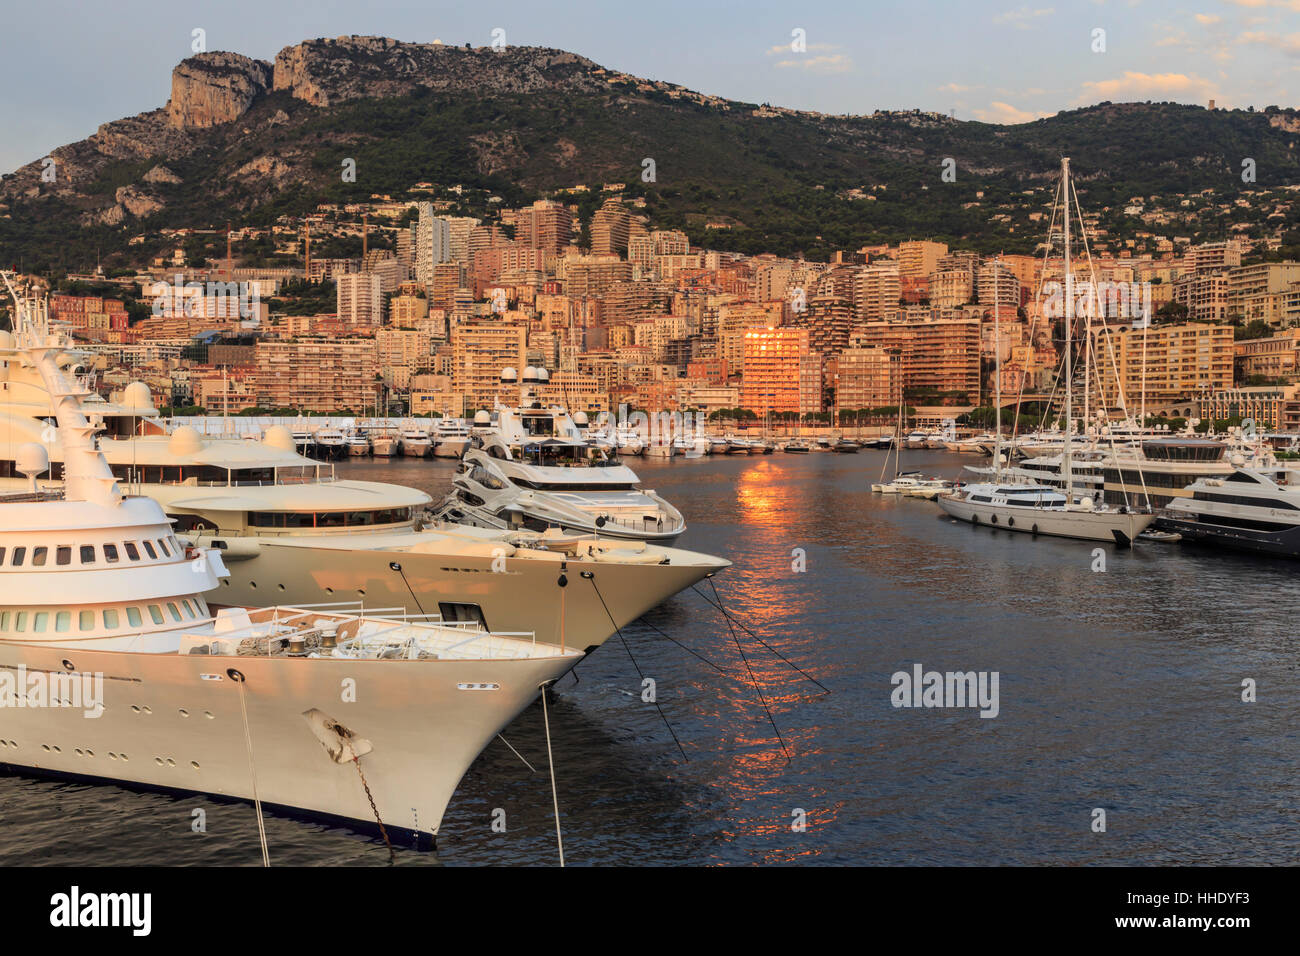 Huge super yachts in the glamorous Port of Monaco (Port Hercules) at sunrise, from the sea, Monte Carlo, Monaco, - Stock Image